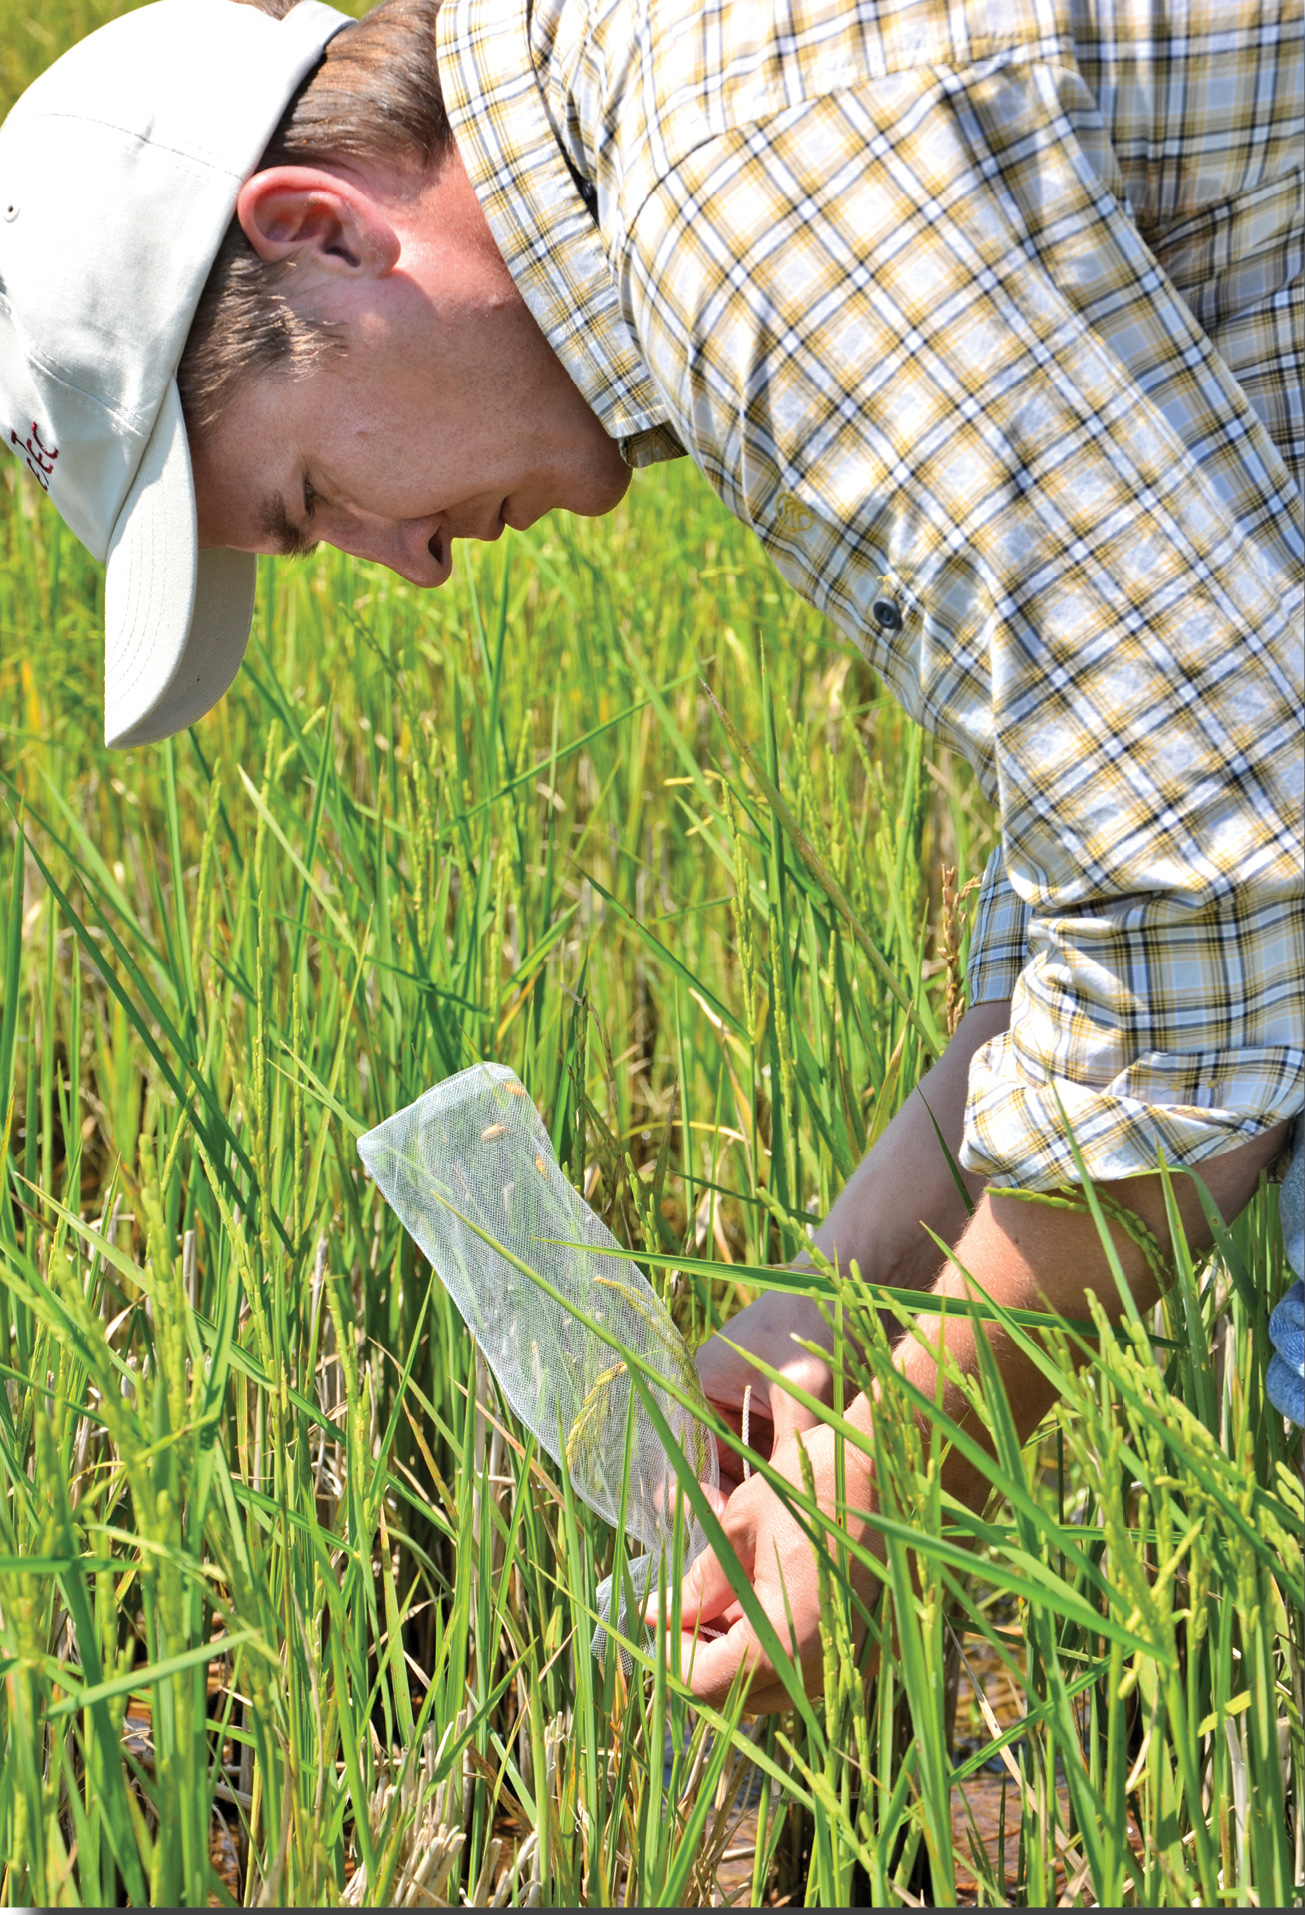 Farmers see more ways to fight pests